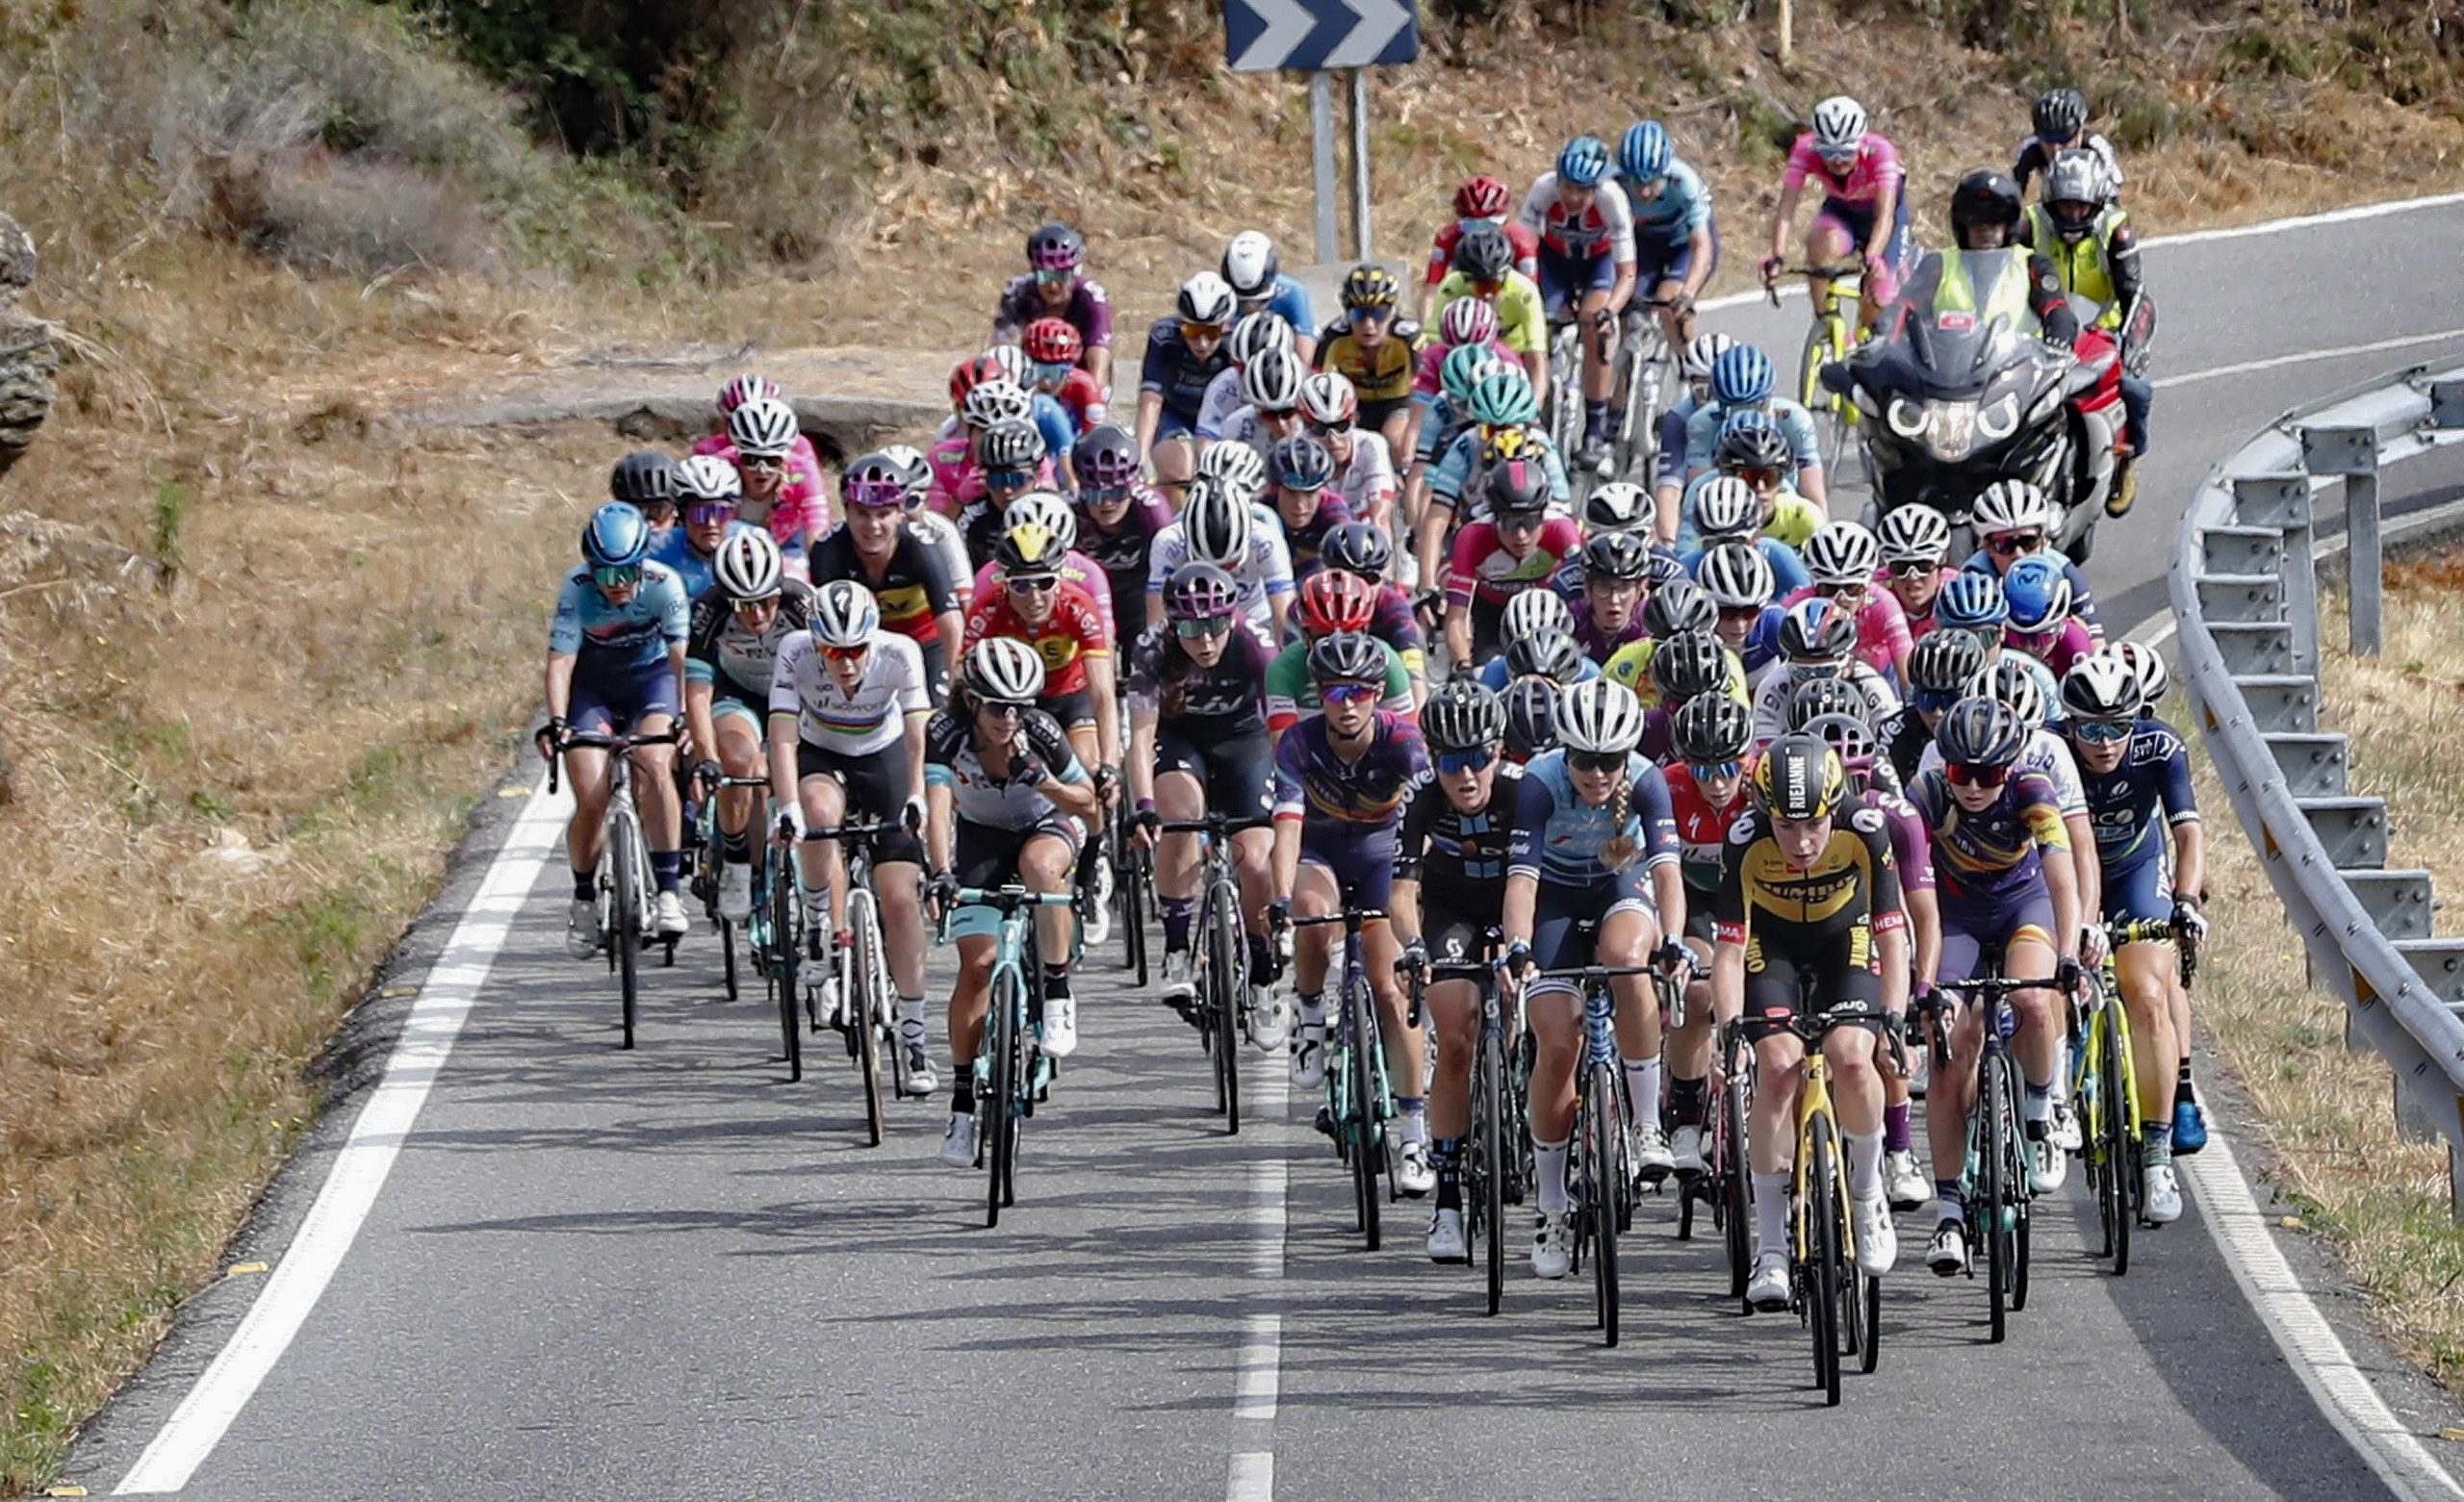 Liane Lippert and Floortje Mackaij take 2nd and 5th after all-out racing in Spain